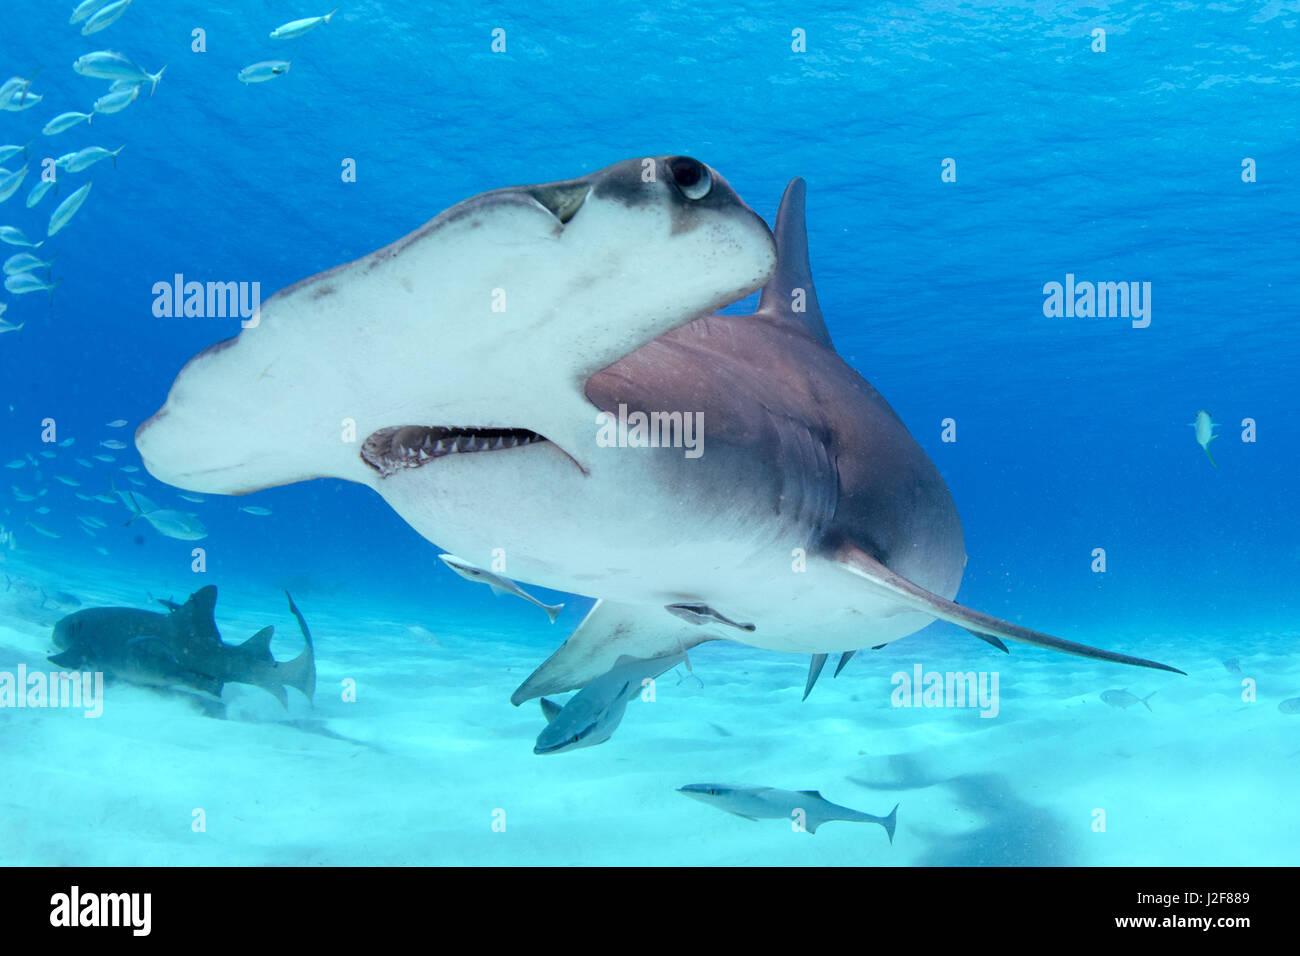 Great hammerhead shark, a shark species endangered by overfishing for its fins - Stock Image